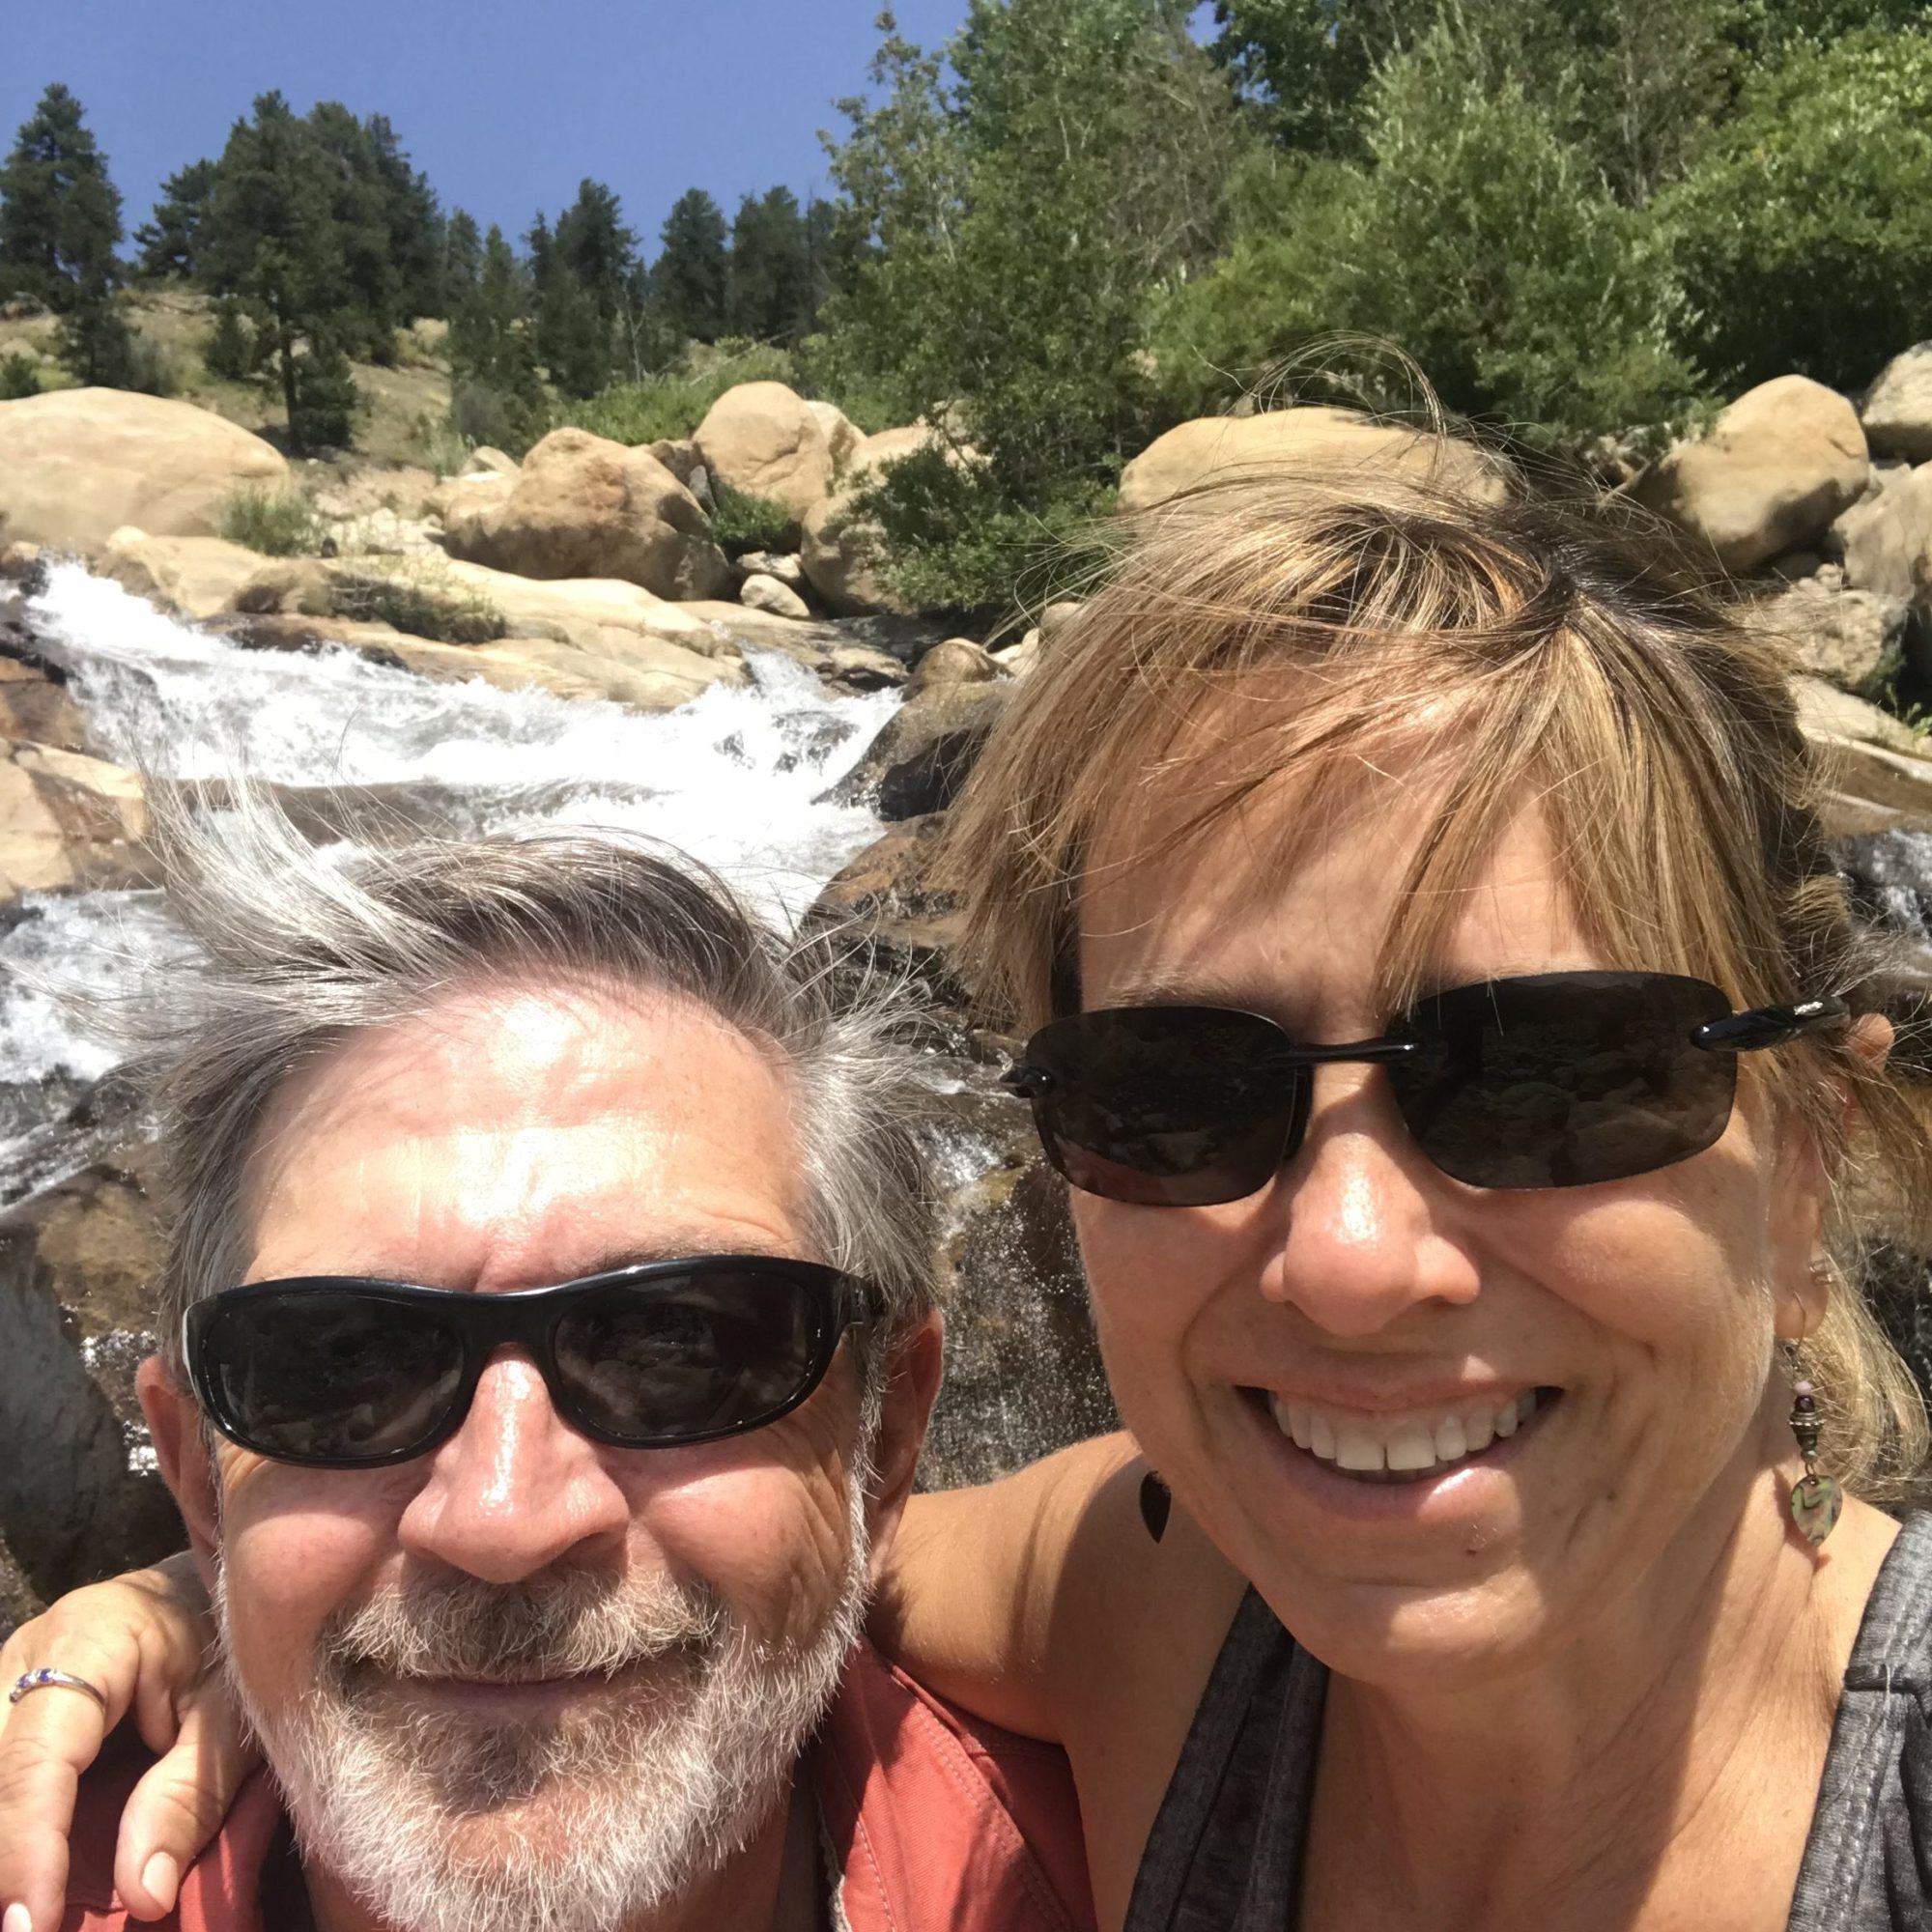 Selfie of a couple in Rocky Mountain National Park